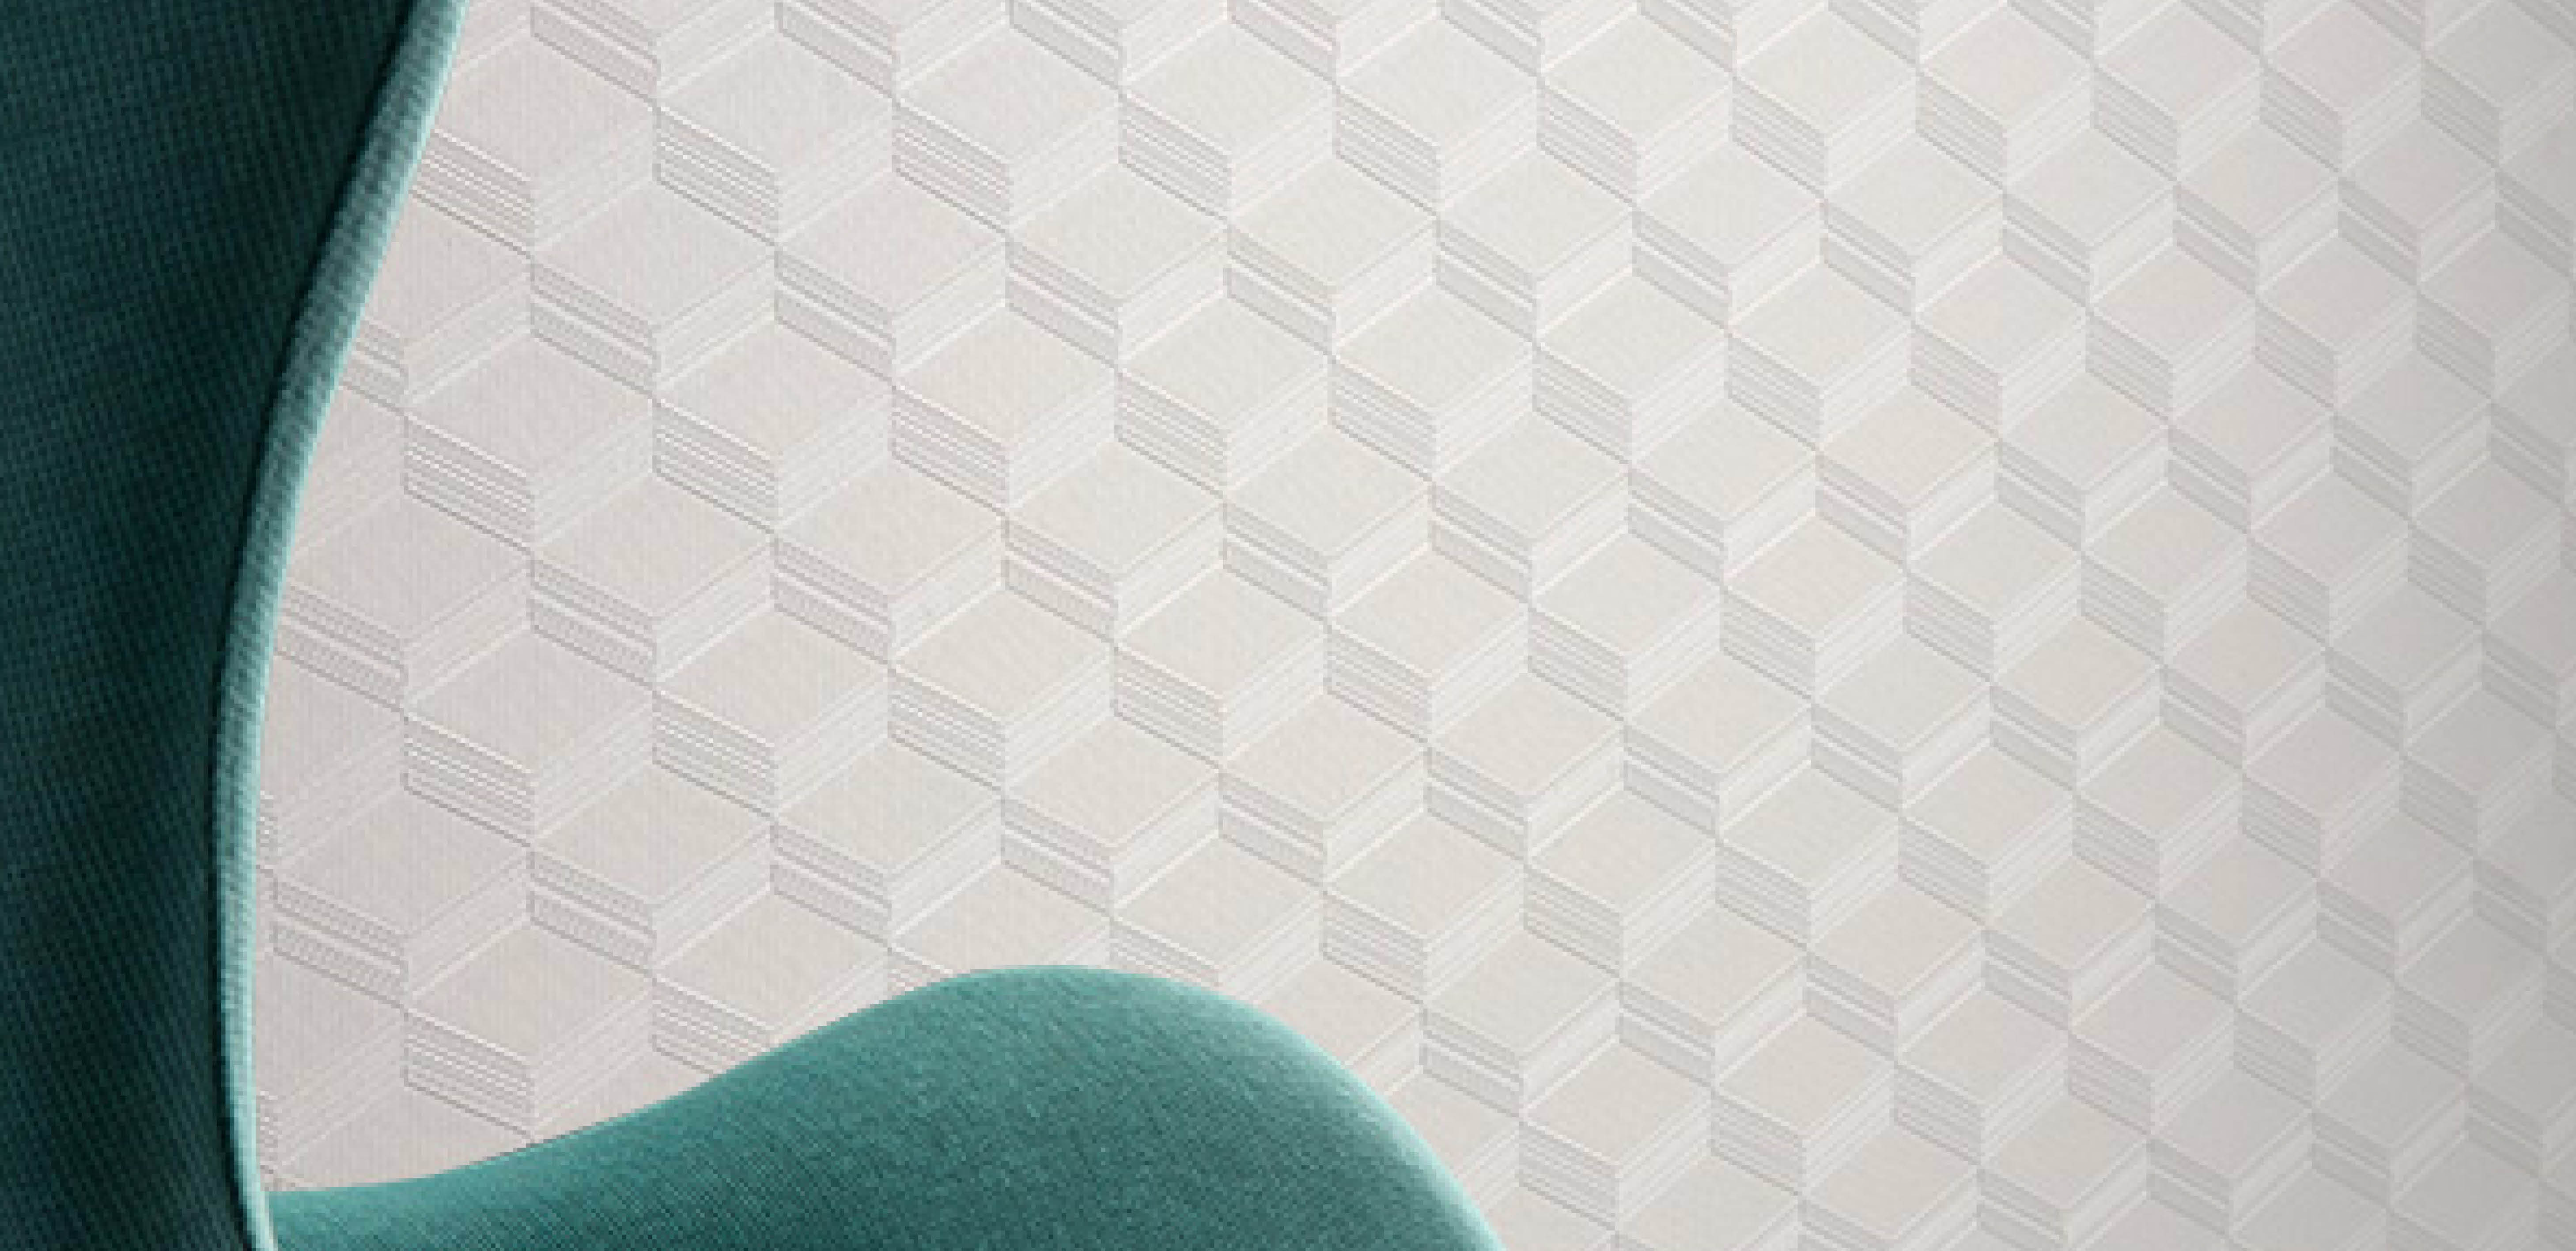 Jetta Wallcovering, LEVEY Commercial and Architectural Finishes